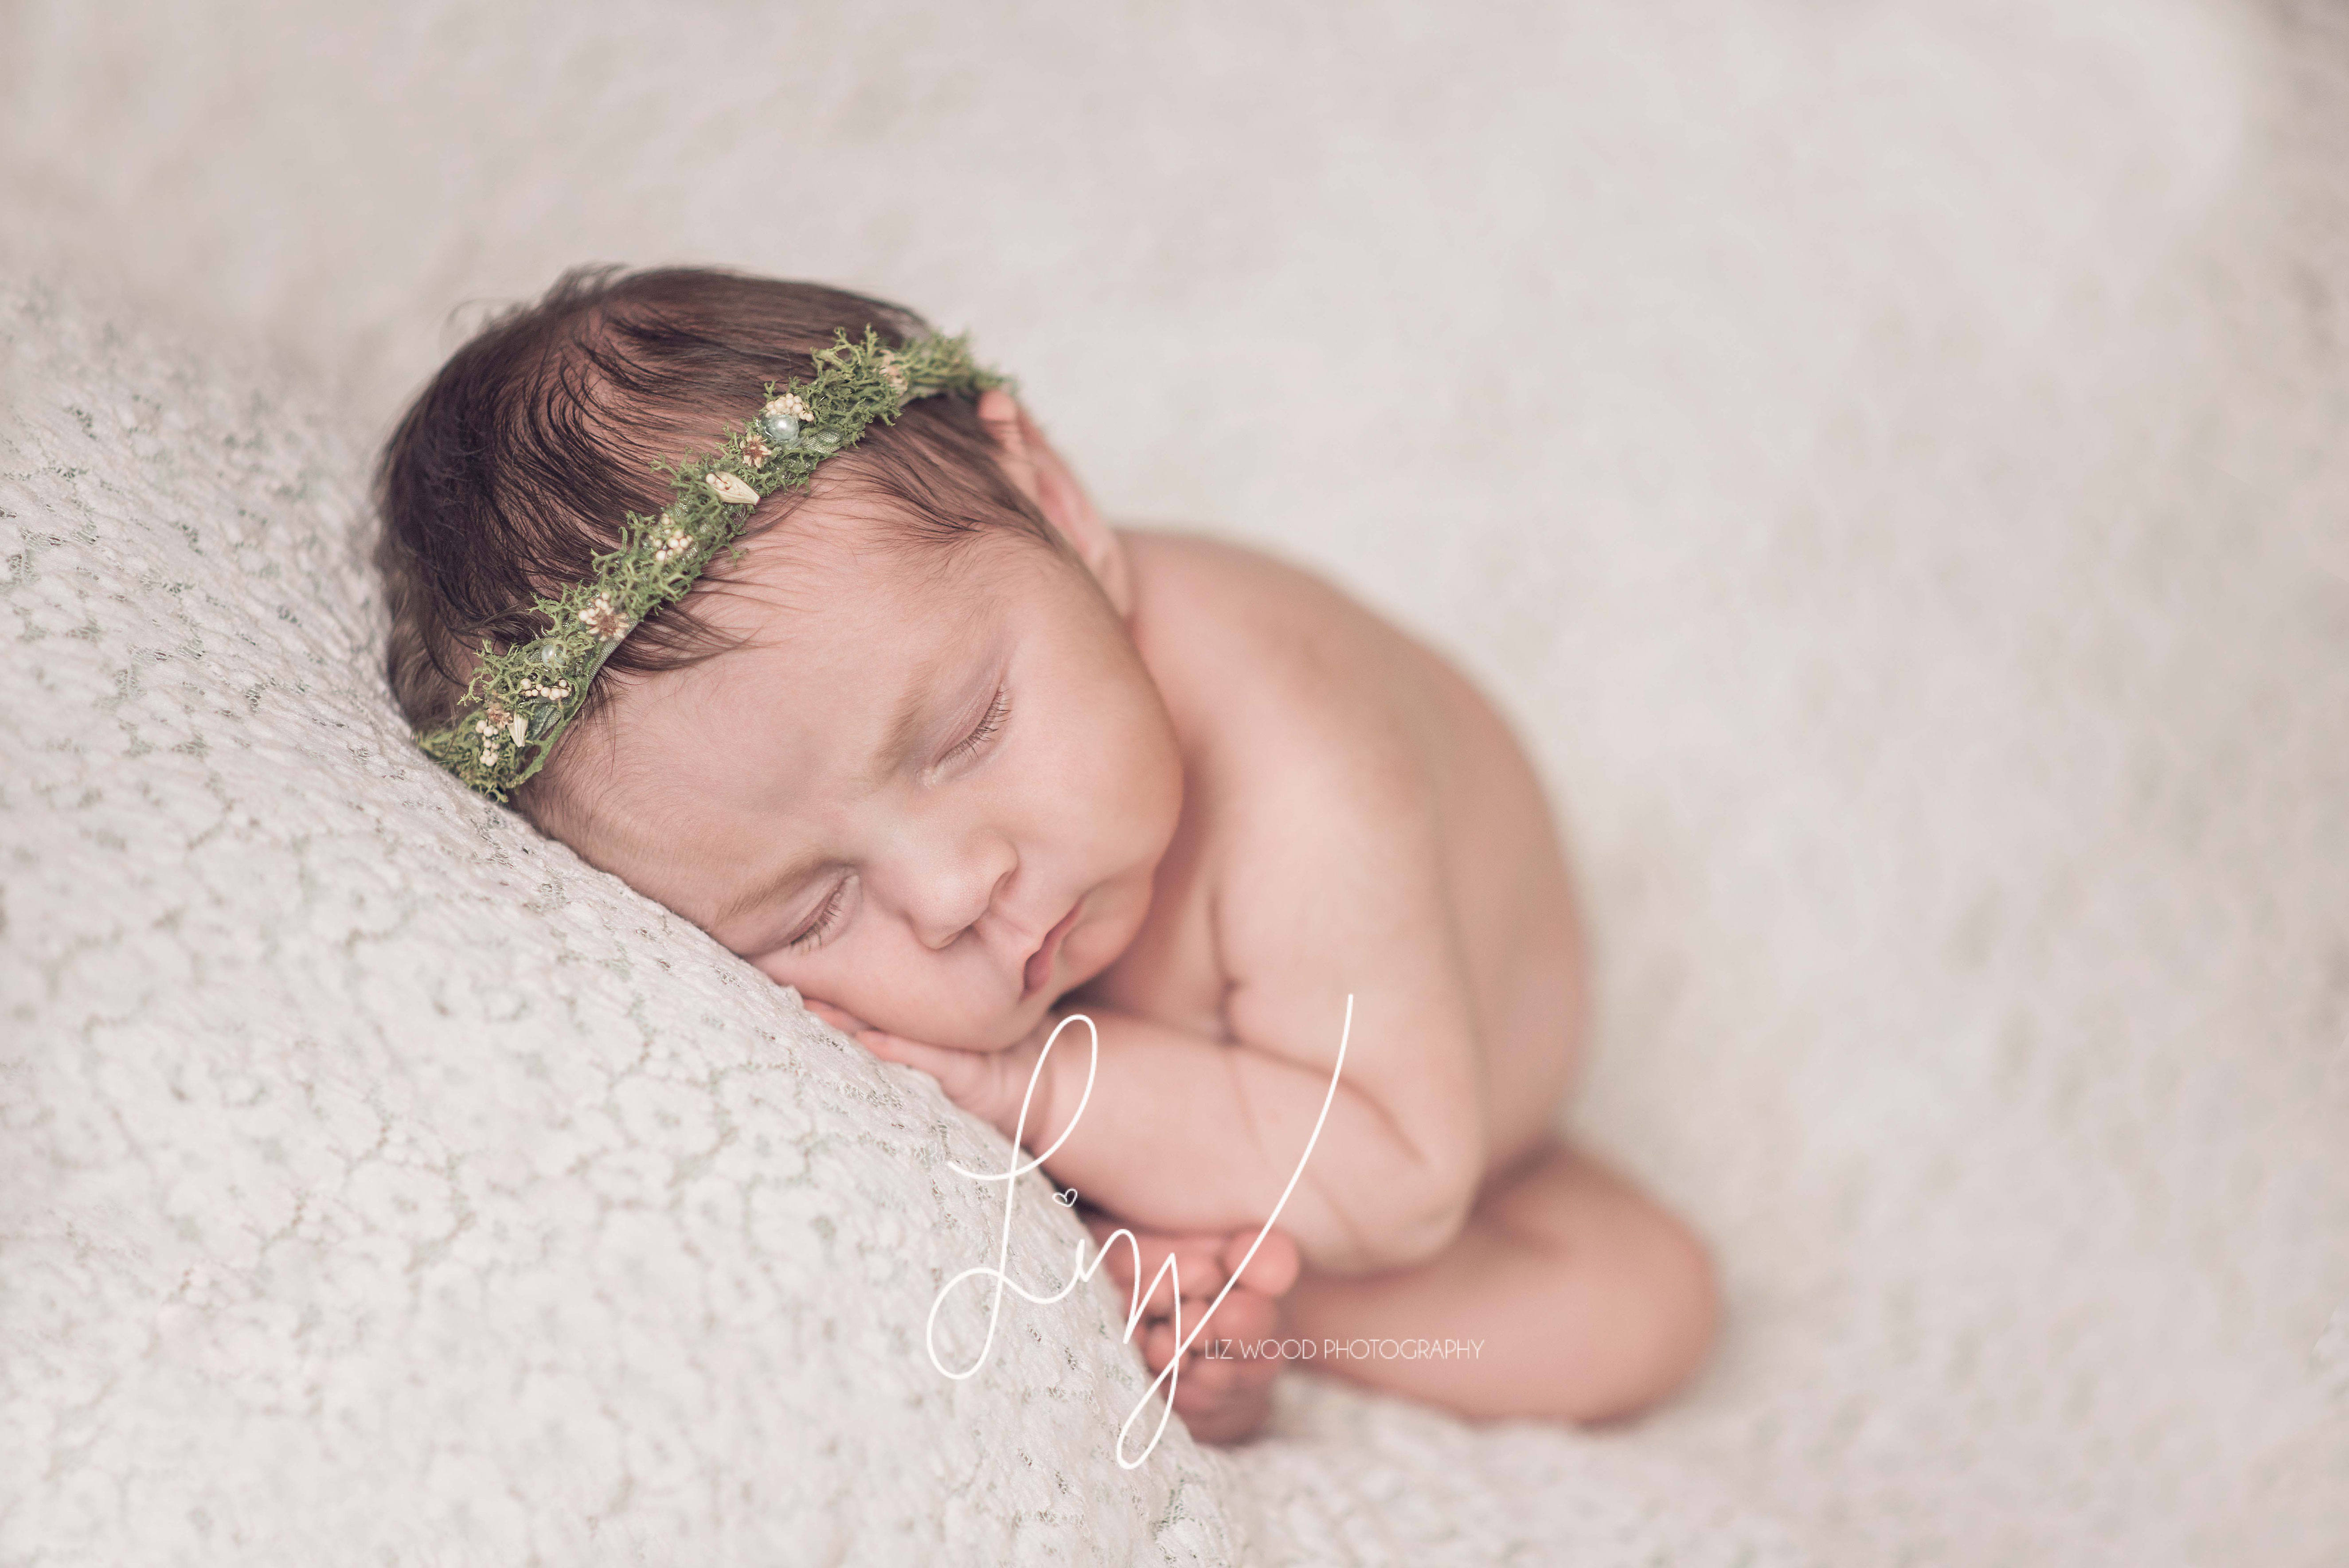 Baby girl laying on a cream lace backdrop - sweet simple newborn photographer in Essex and Suffolk